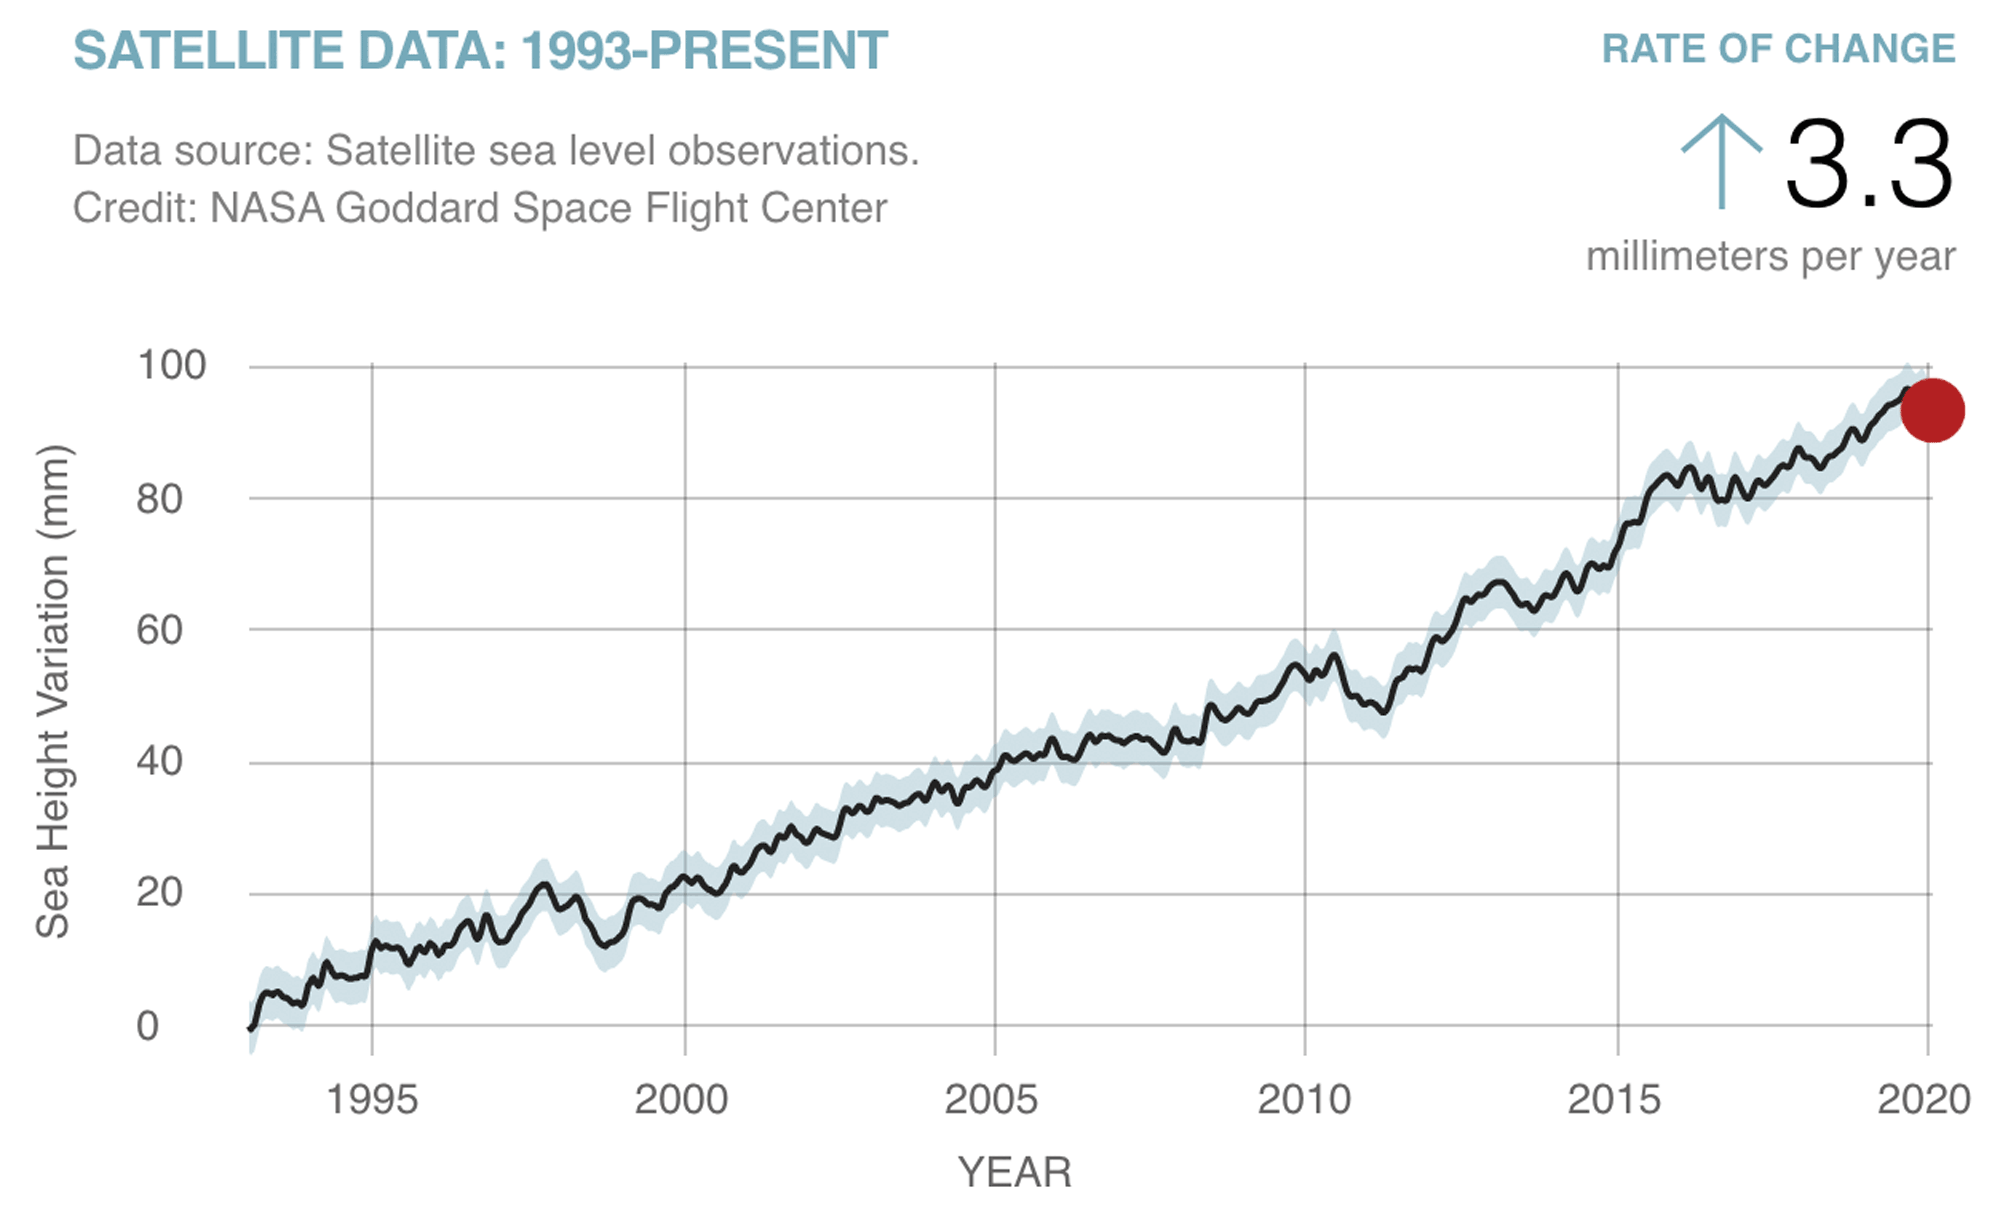 Graph showing global average sea level change since 1993.